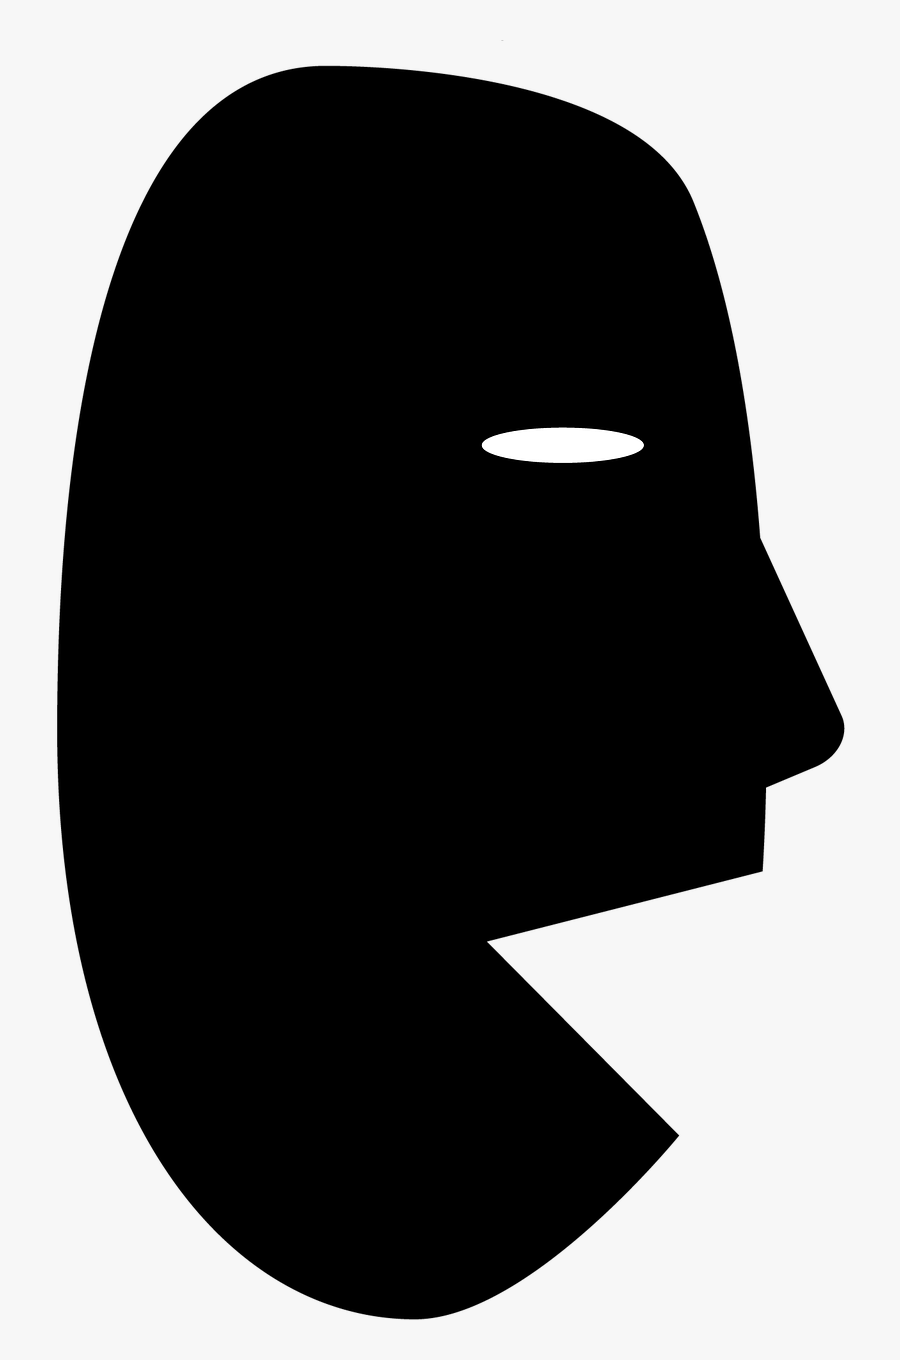 Talking Head Silhouette Free Picture.